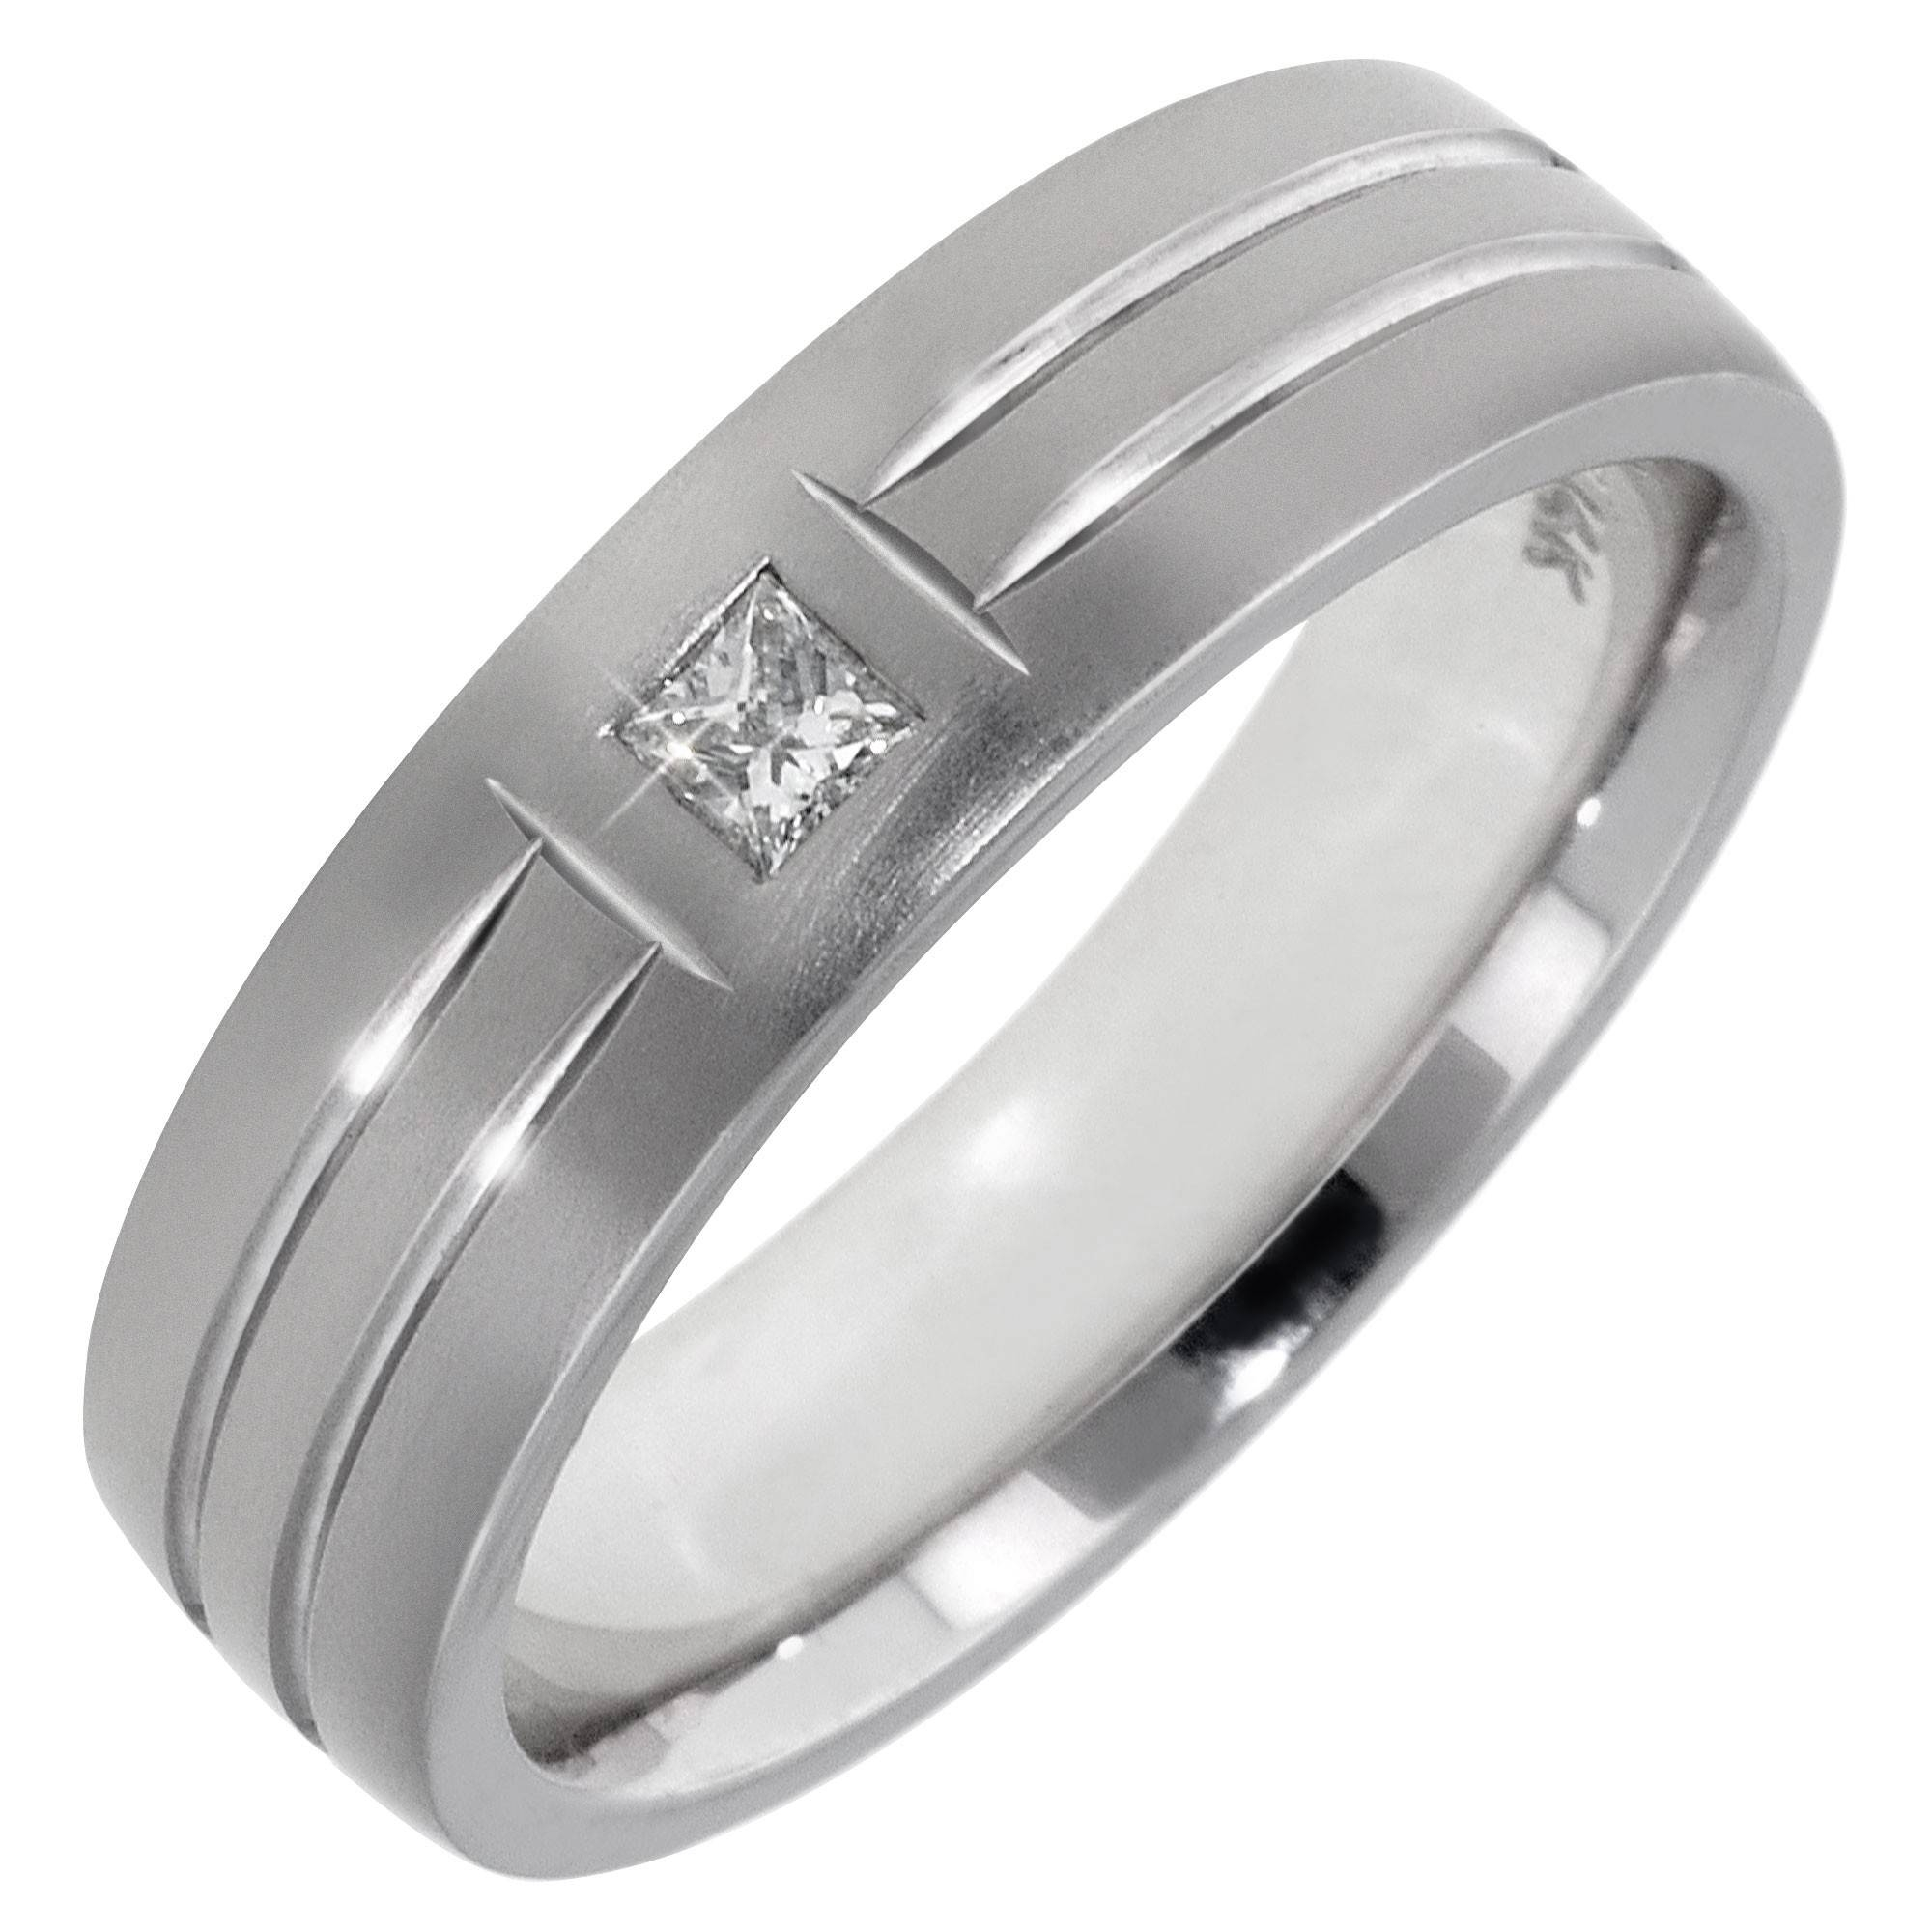 Square Cut Diamond Mens Wedding Band In 14kt White Gold (1/10ct Tw) In Mens White Gold Wedding Bands With Diamonds (View 15 of 15)